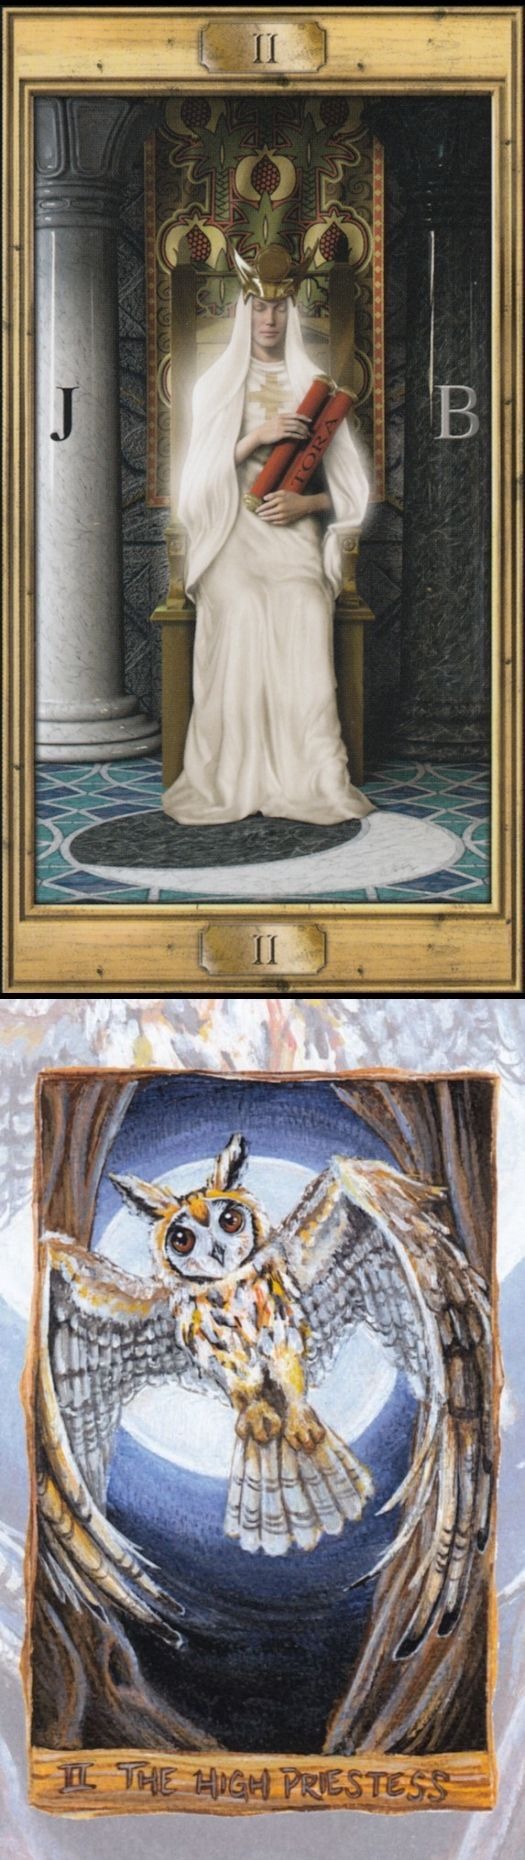 THE HIGH PRIESTESS: intuition and repressed/unheard inner voice (reverse). Pictorial Tarot deck and Animisim Tarot deck: tarot in wonderland, free tarot reading predictions and most accurate tarot reading. Best 2017 cartomancy divination and witches.